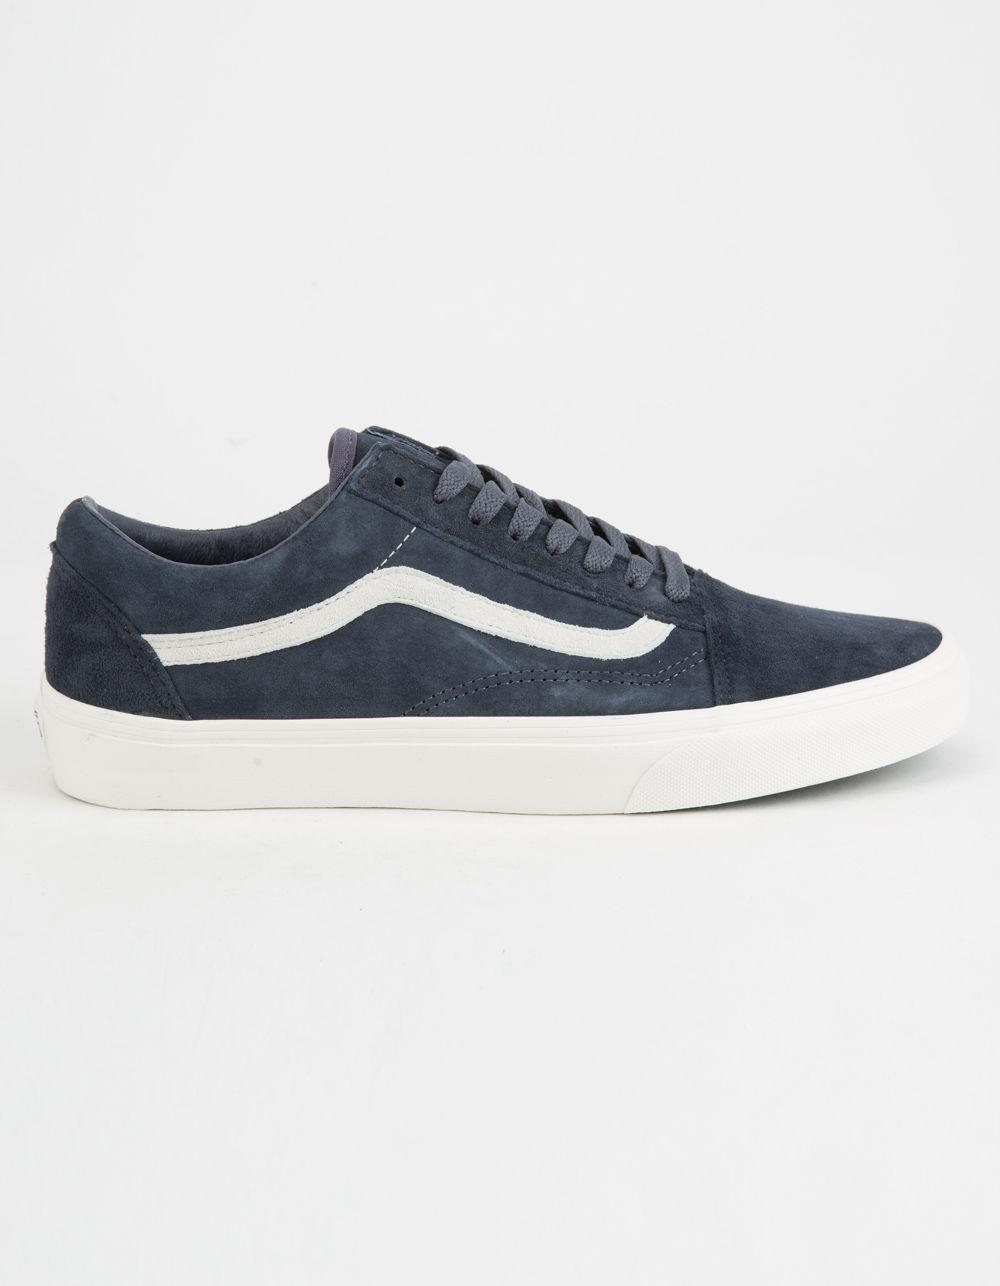 Vans Authentic CLASSICS utilitarian parisian night blanc de blanc